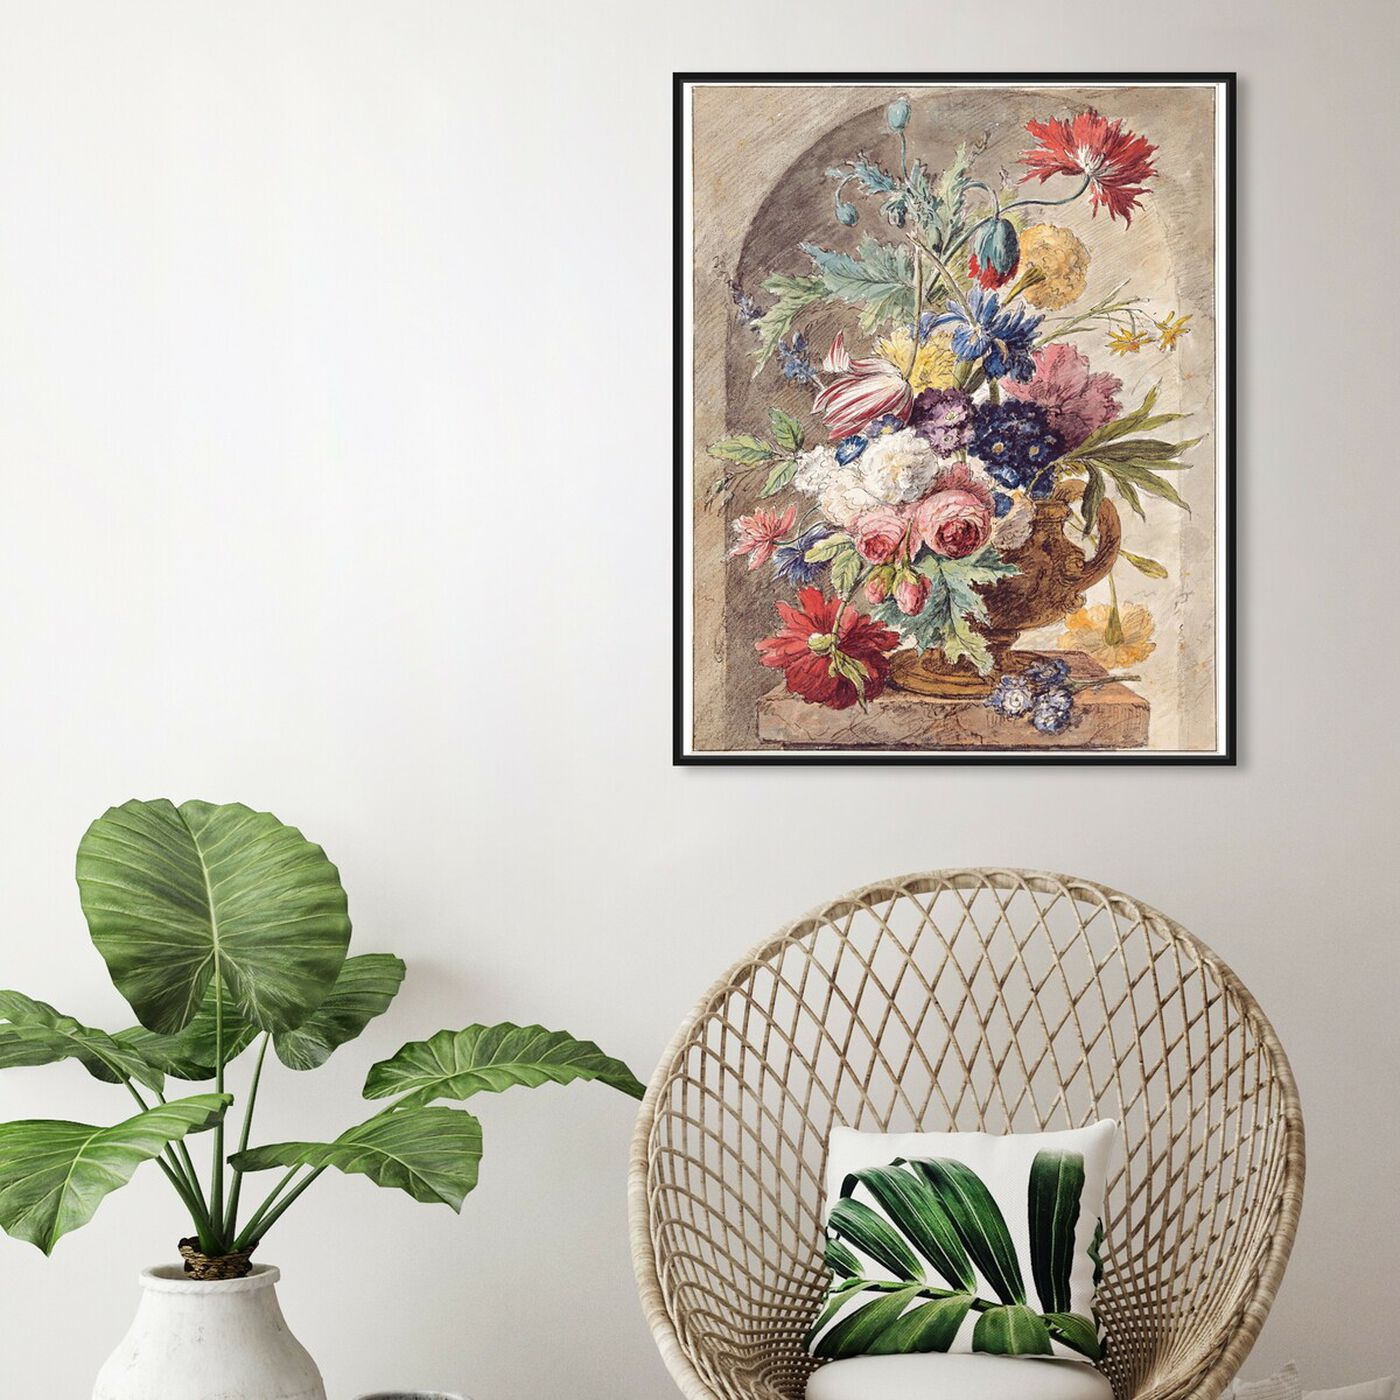 Hanging view of Huysum - Flower Still Life featuring classic and figurative and renaissance art.